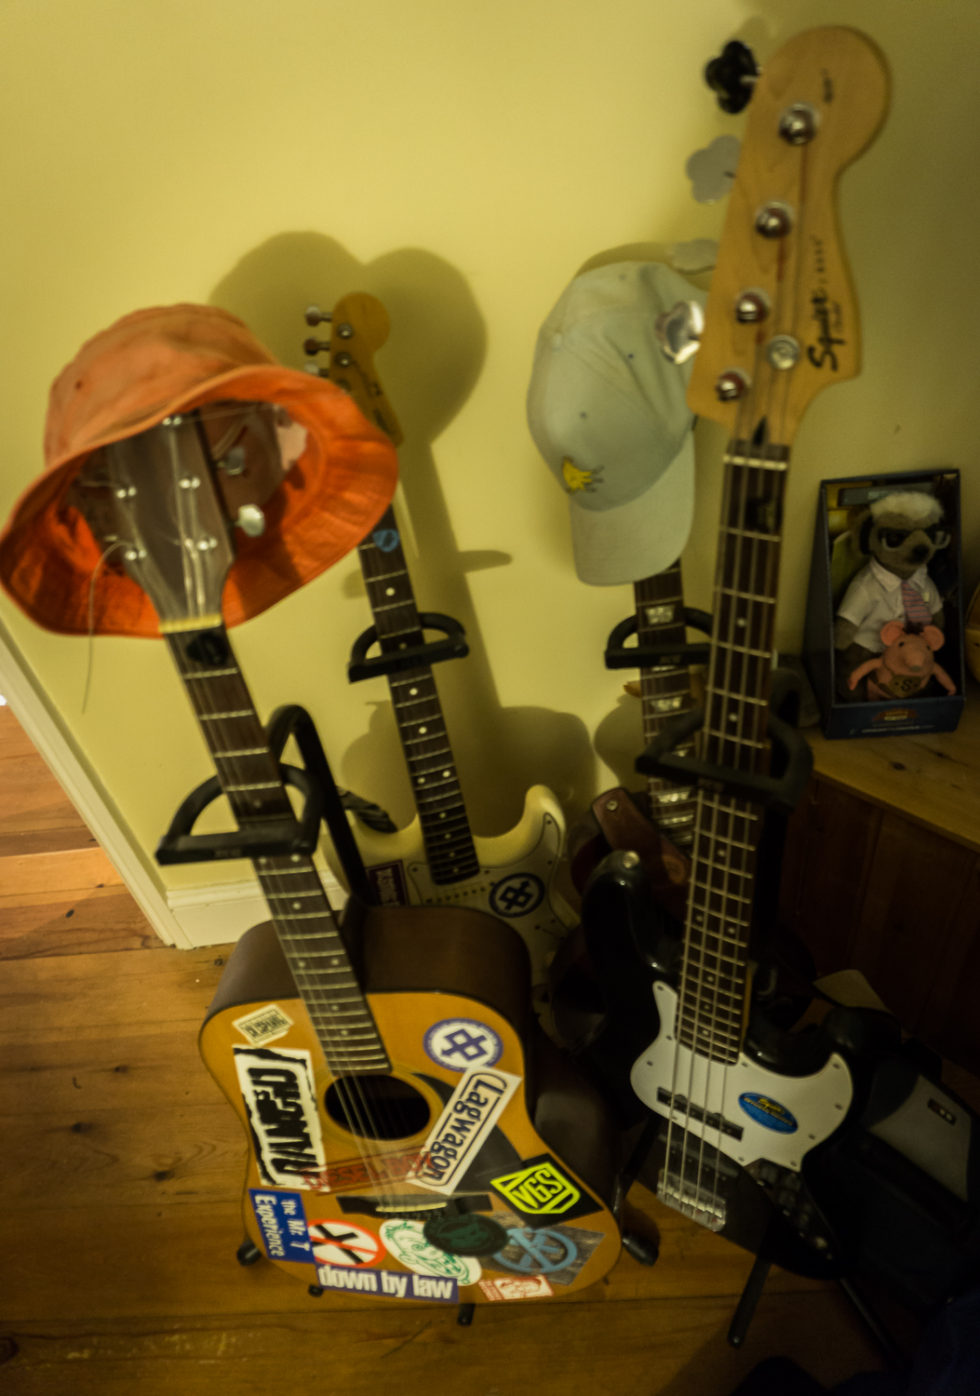 154/365v3 – Guitars With Hats